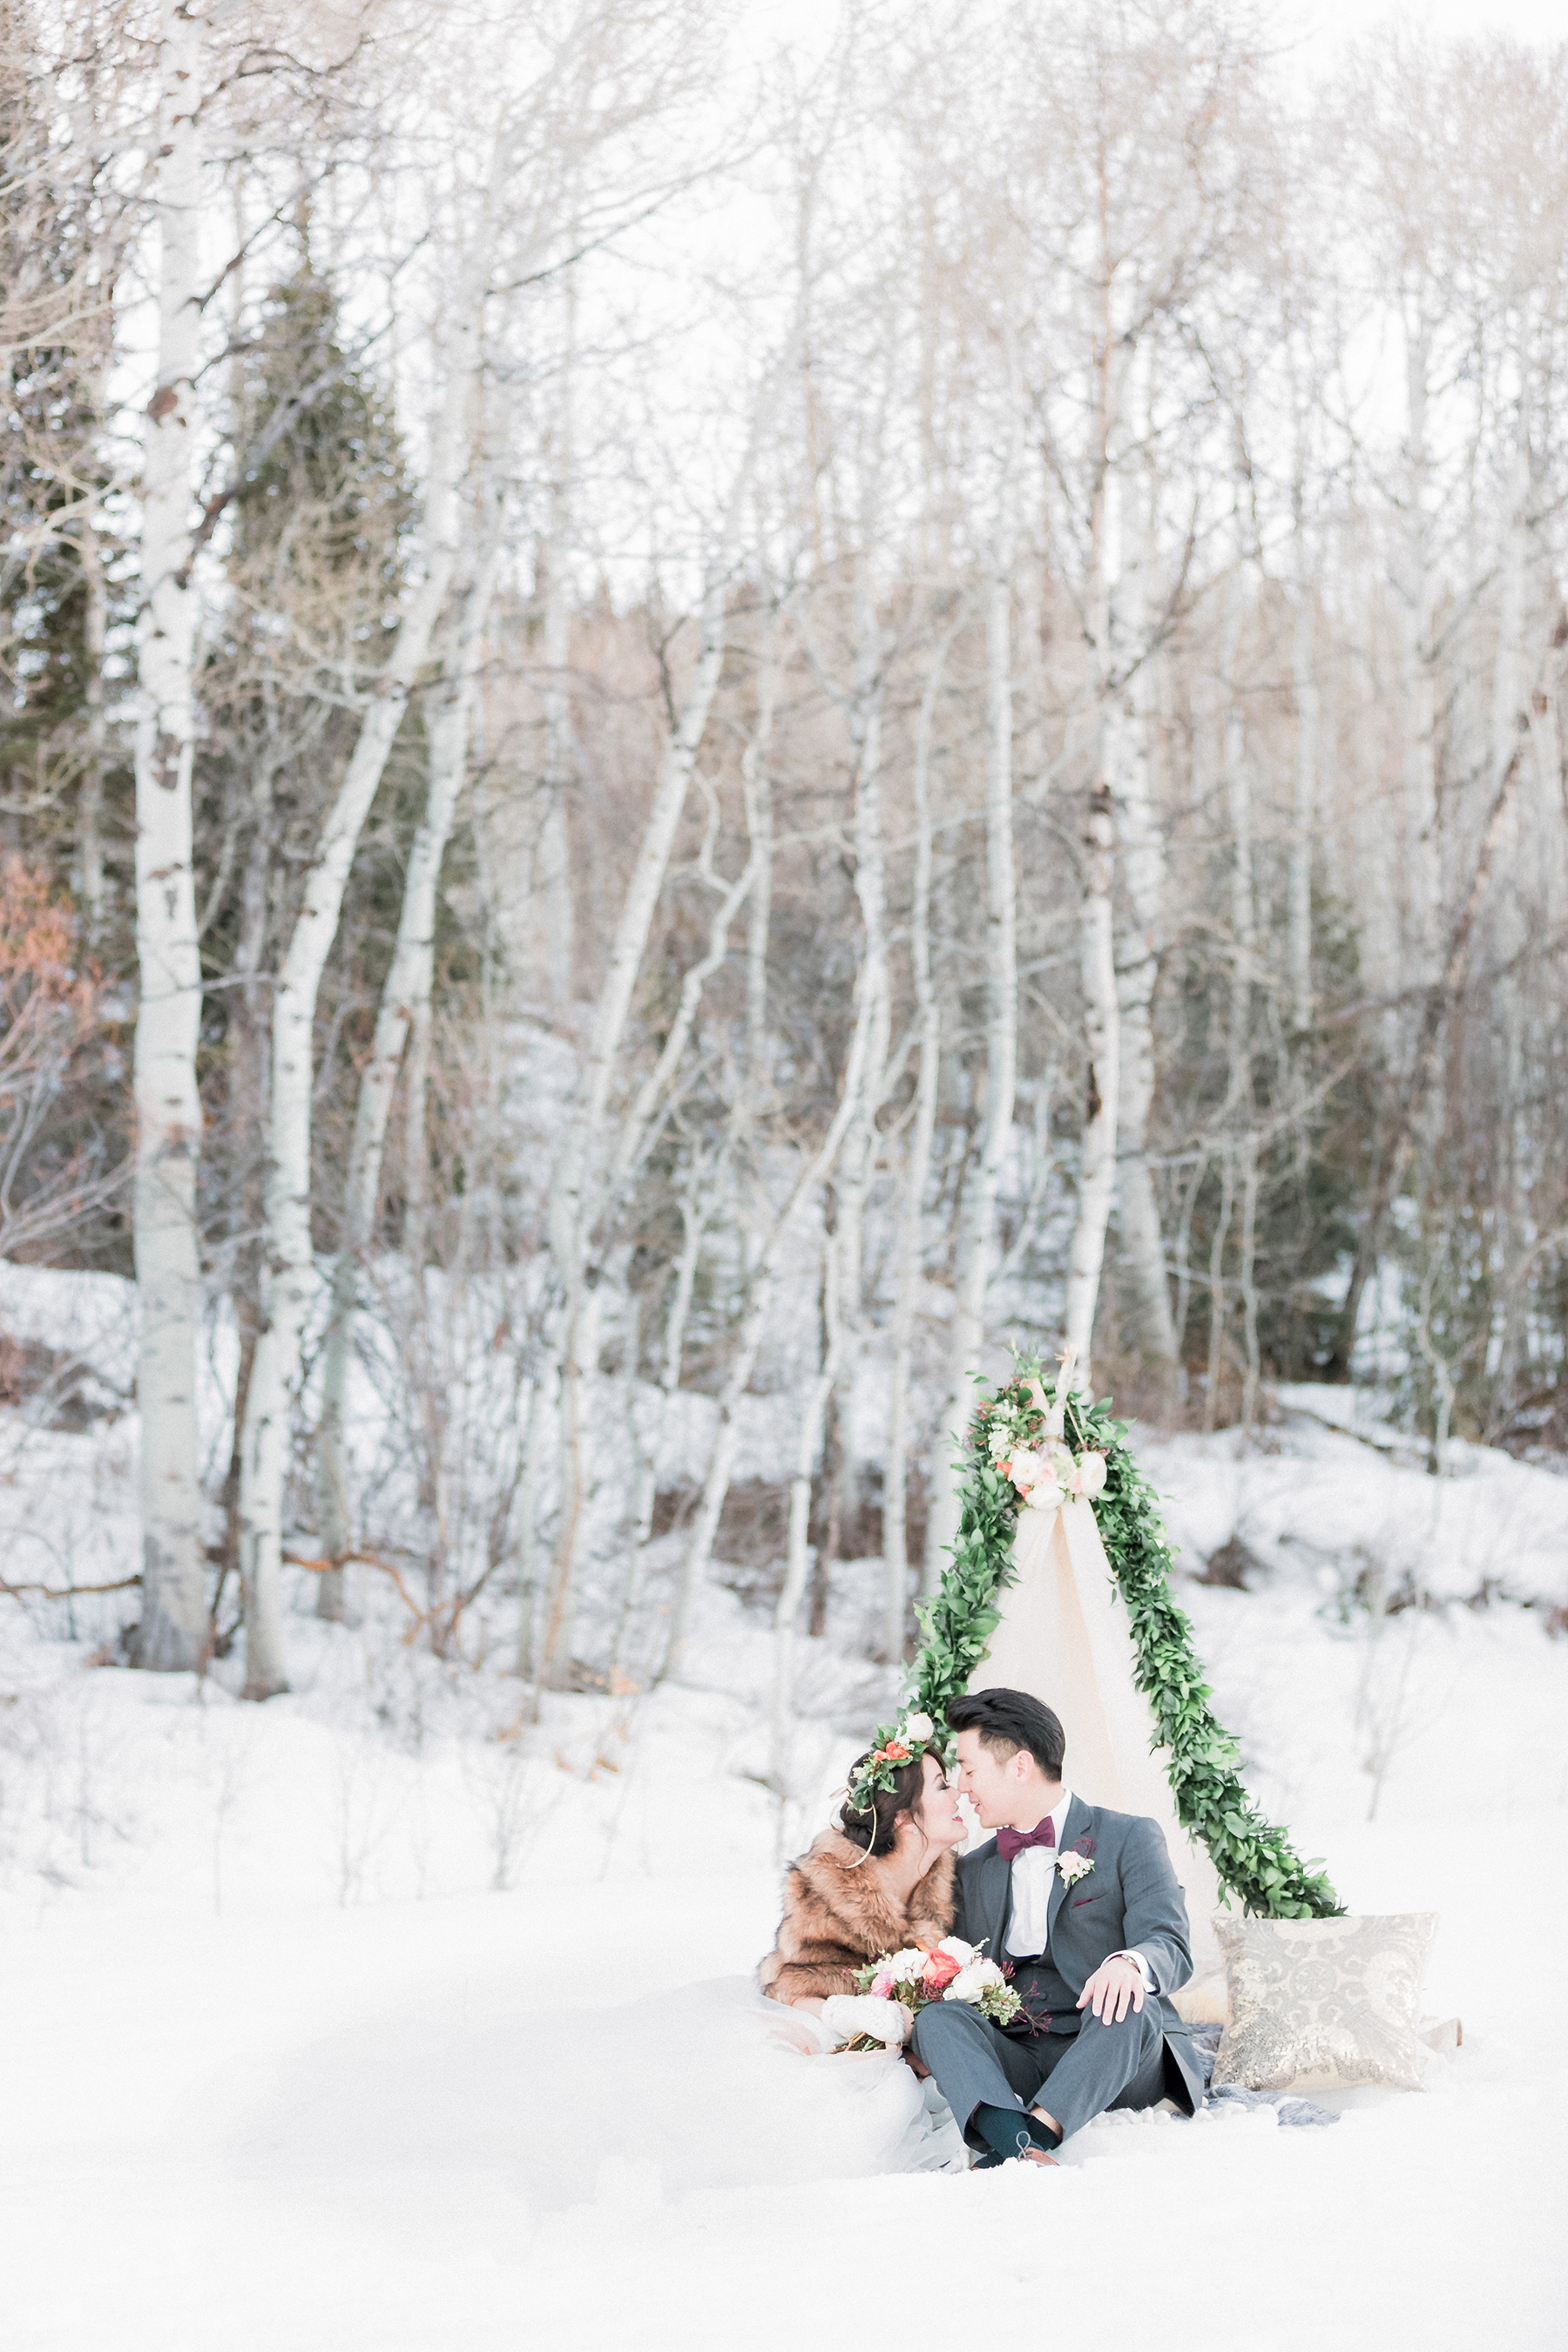 Bride and Groom Sitting in Snow